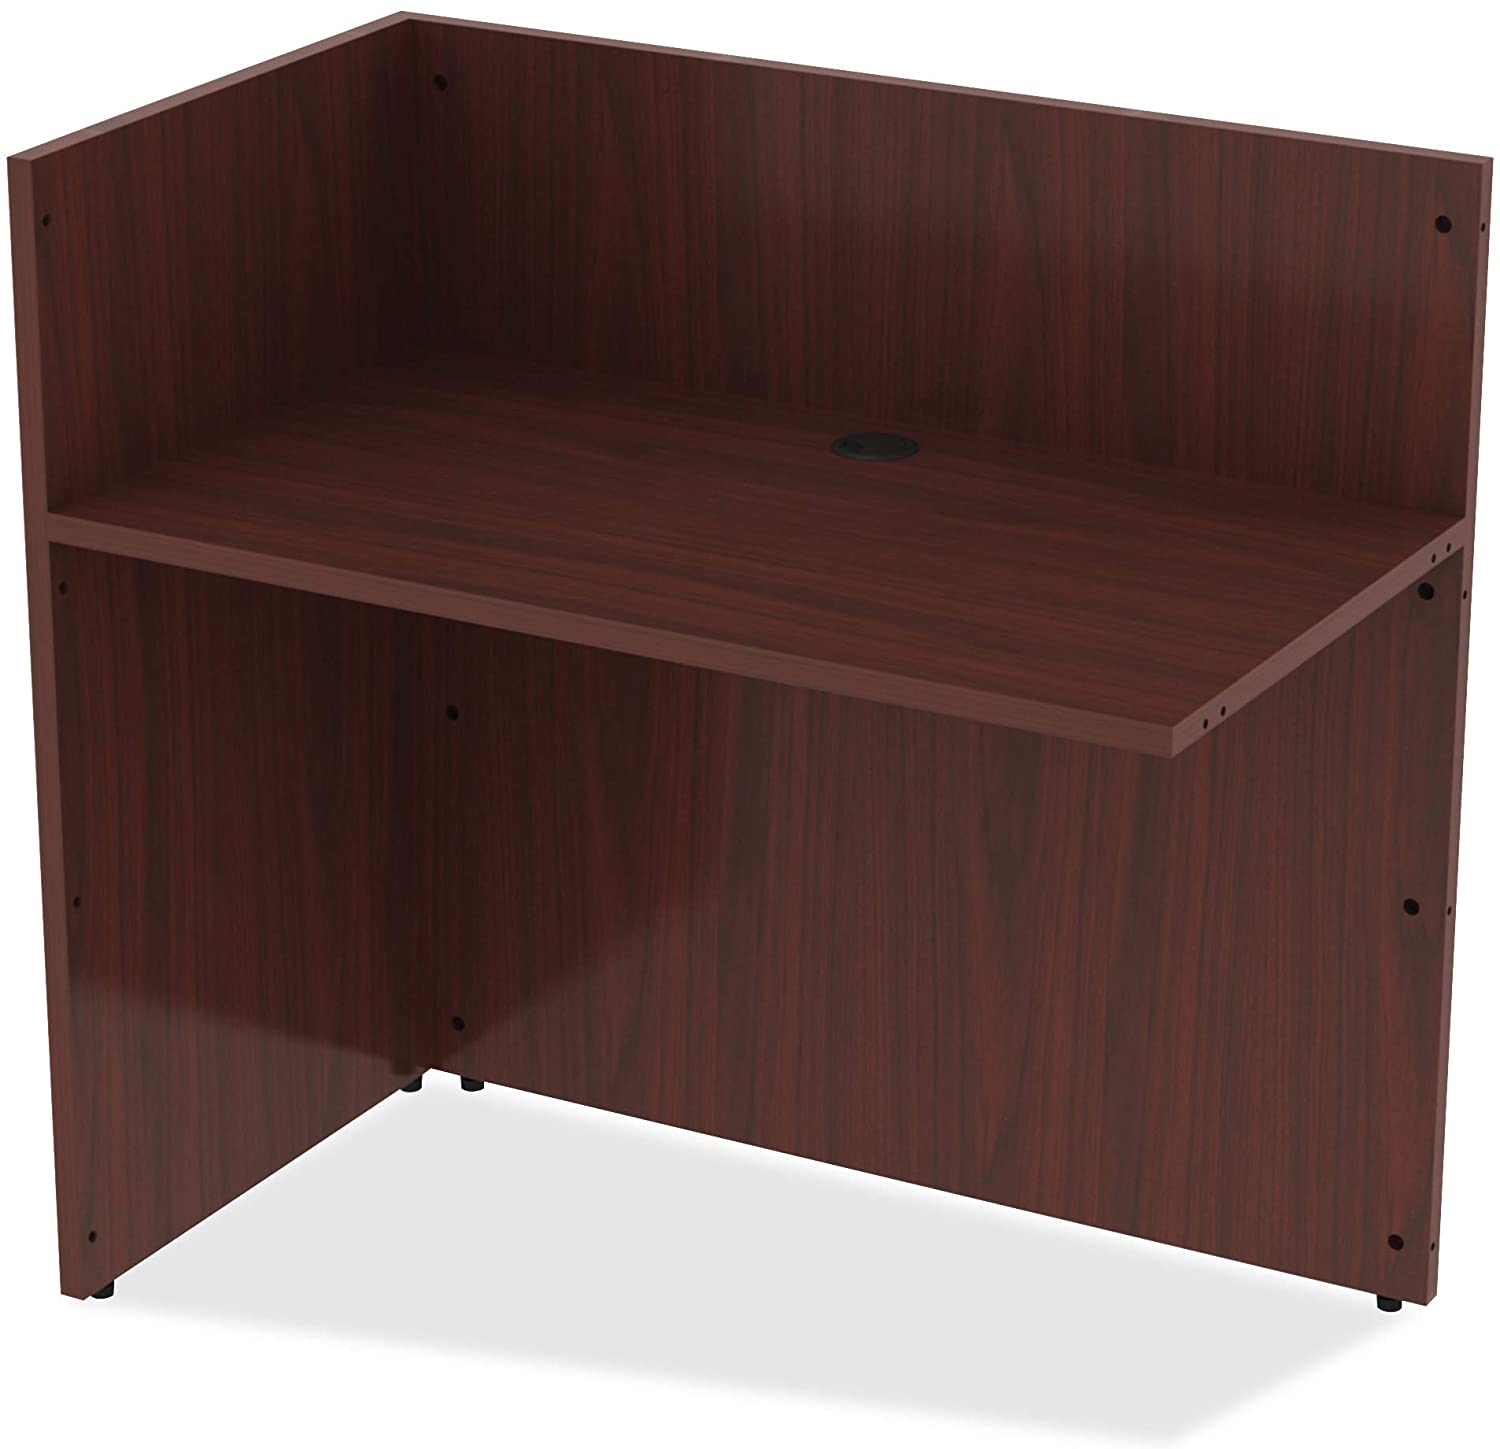 Lorell Essentials Reception Desk, Mahogany